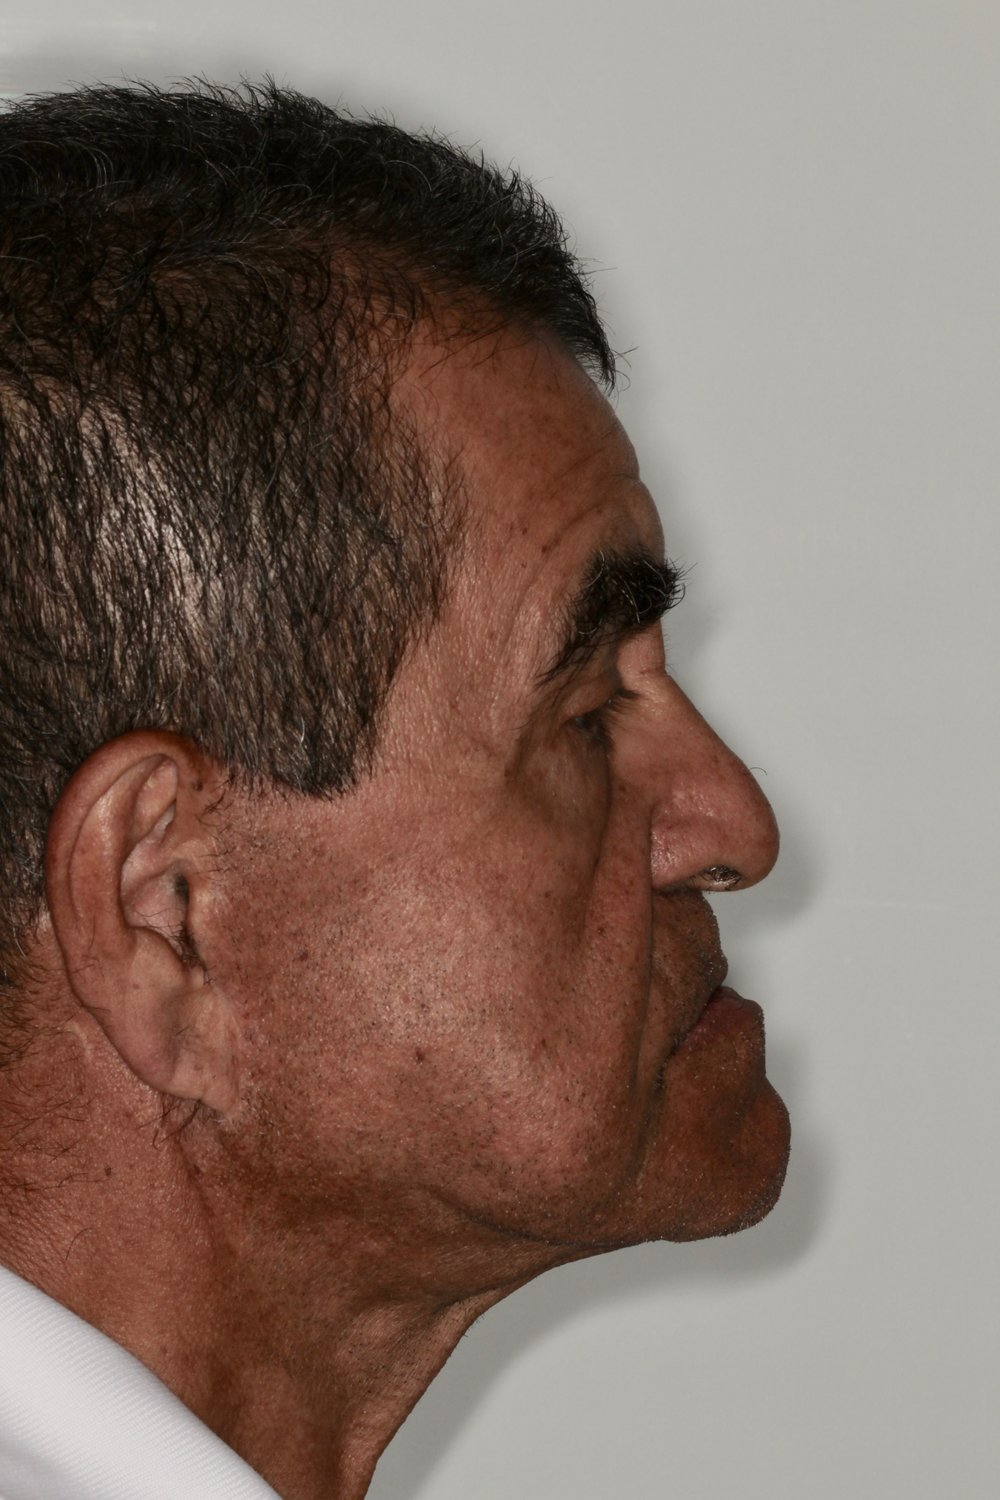 Pre-Op Lateral Profile